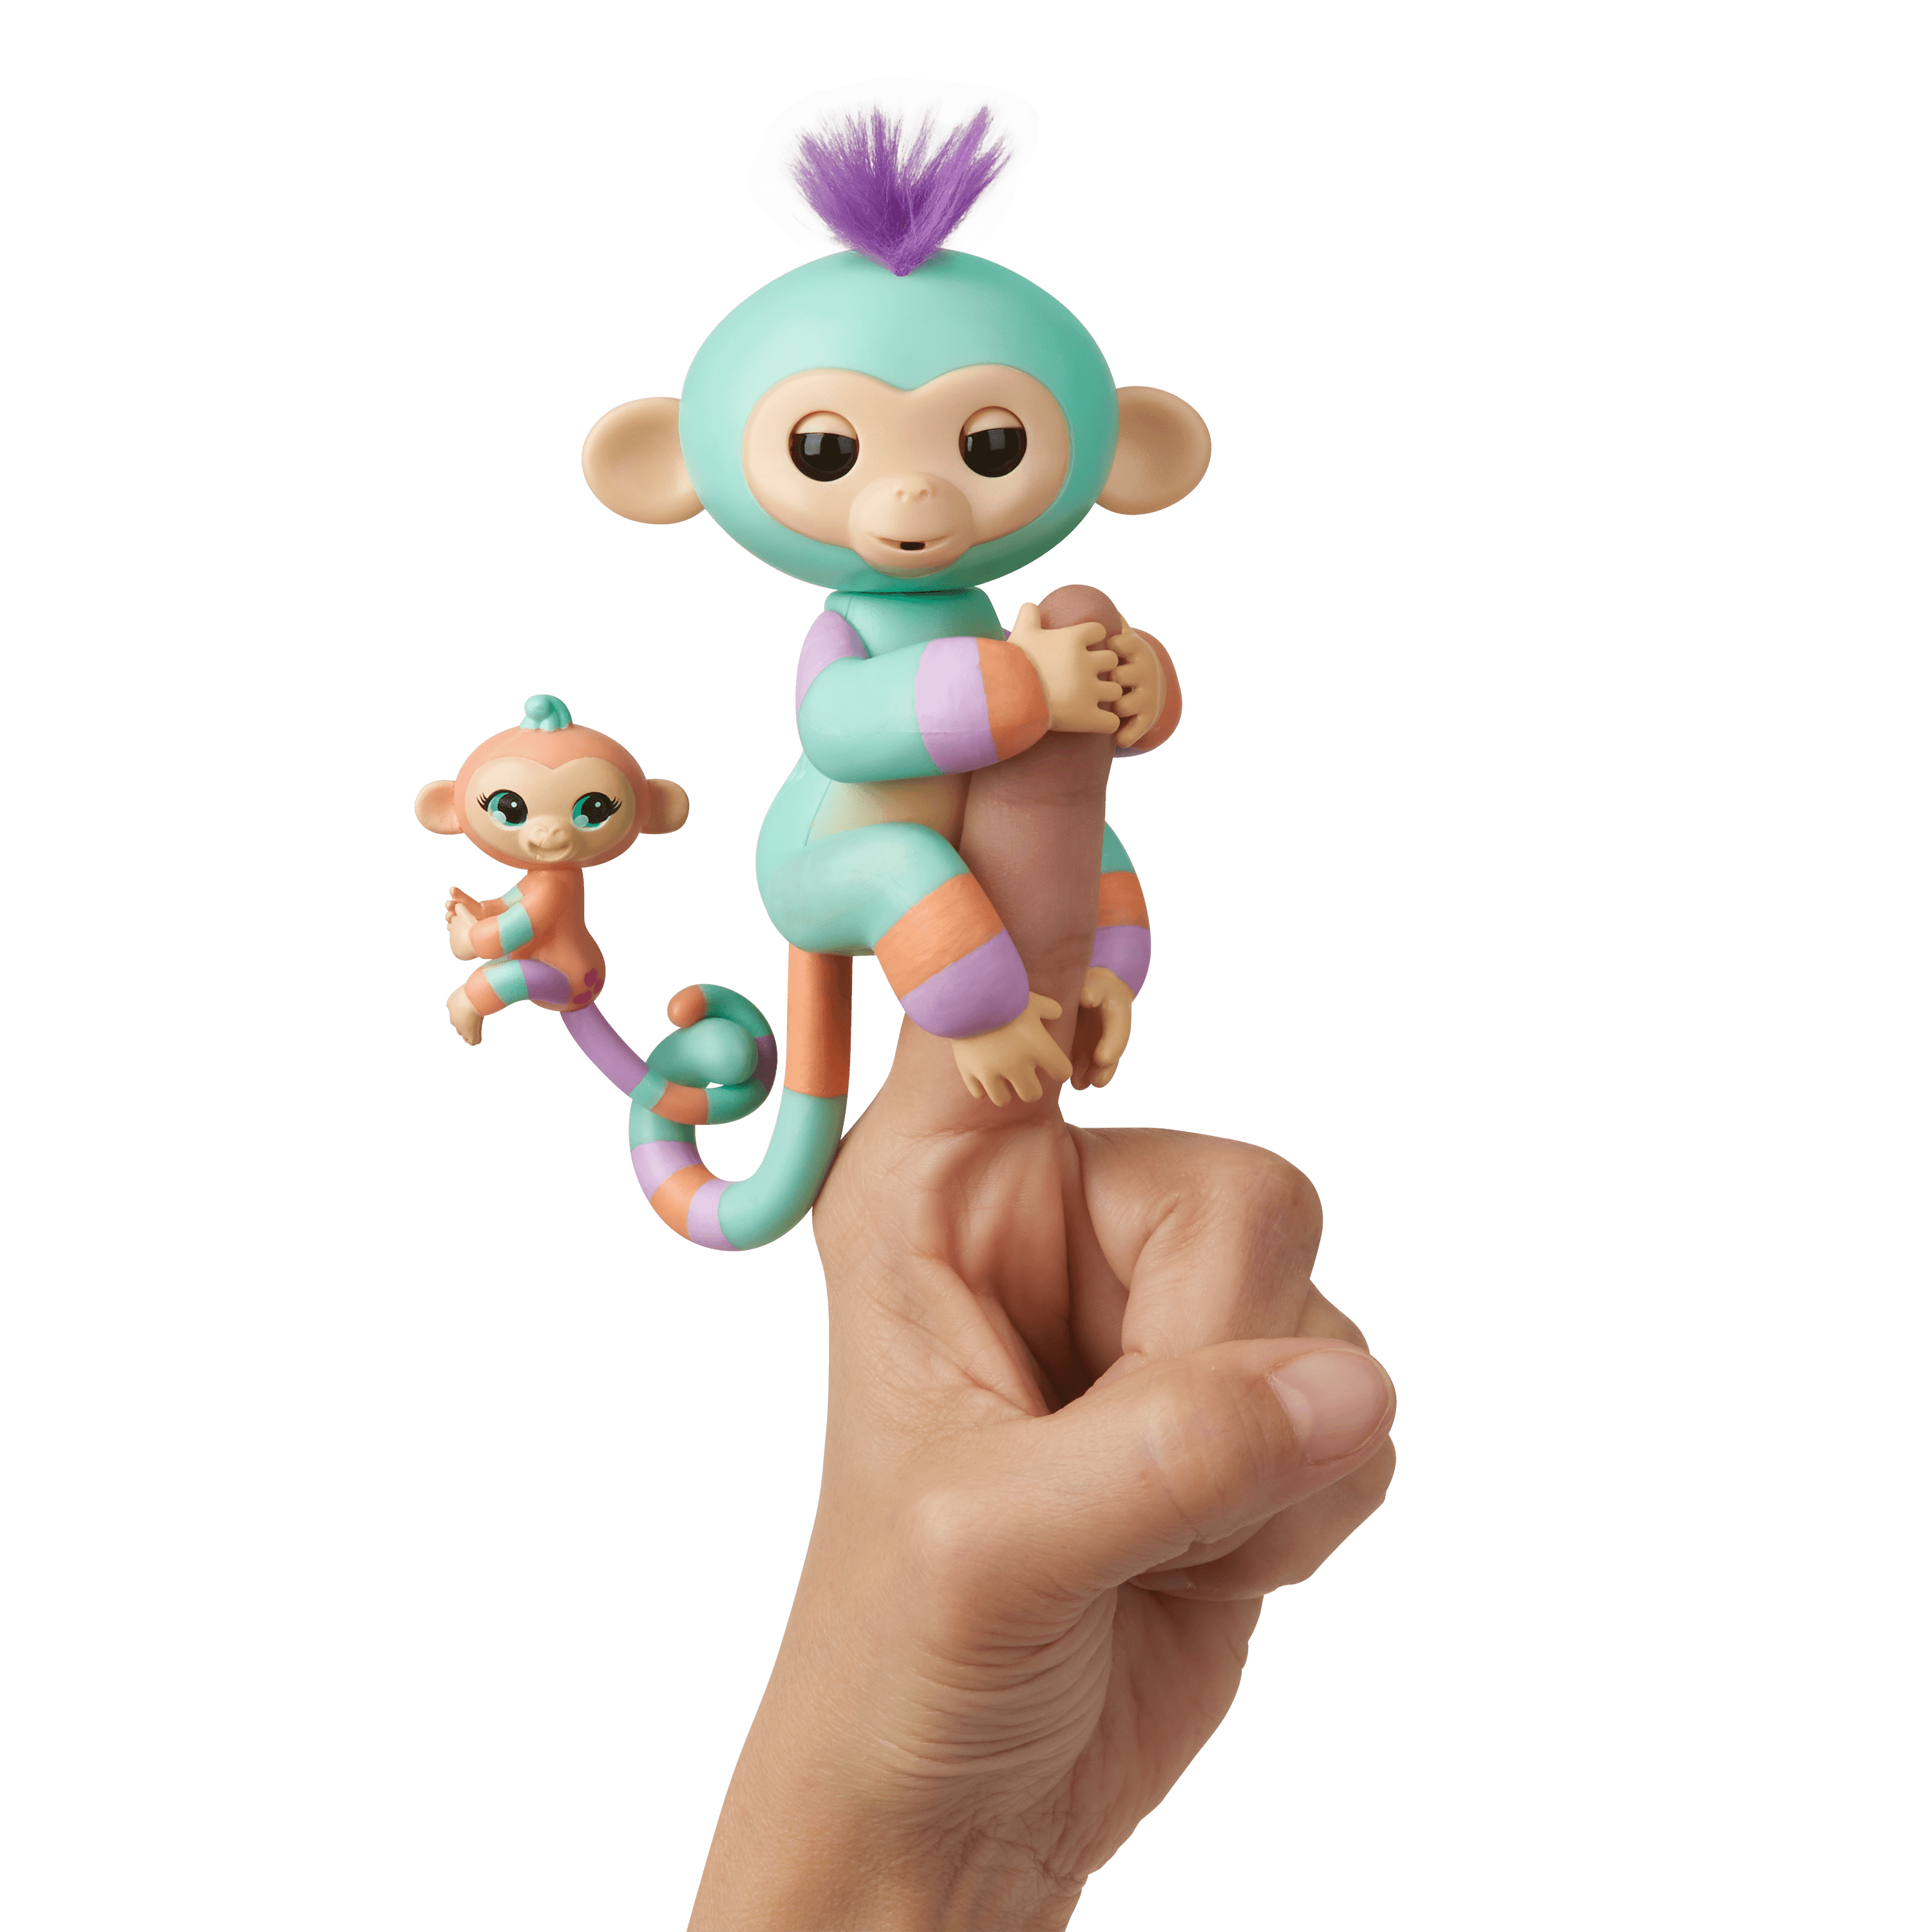 Finger Interactive Electronic Pet Toy Happy Monkey - Turquoise Finger Baby Monkey collect and have fun with them